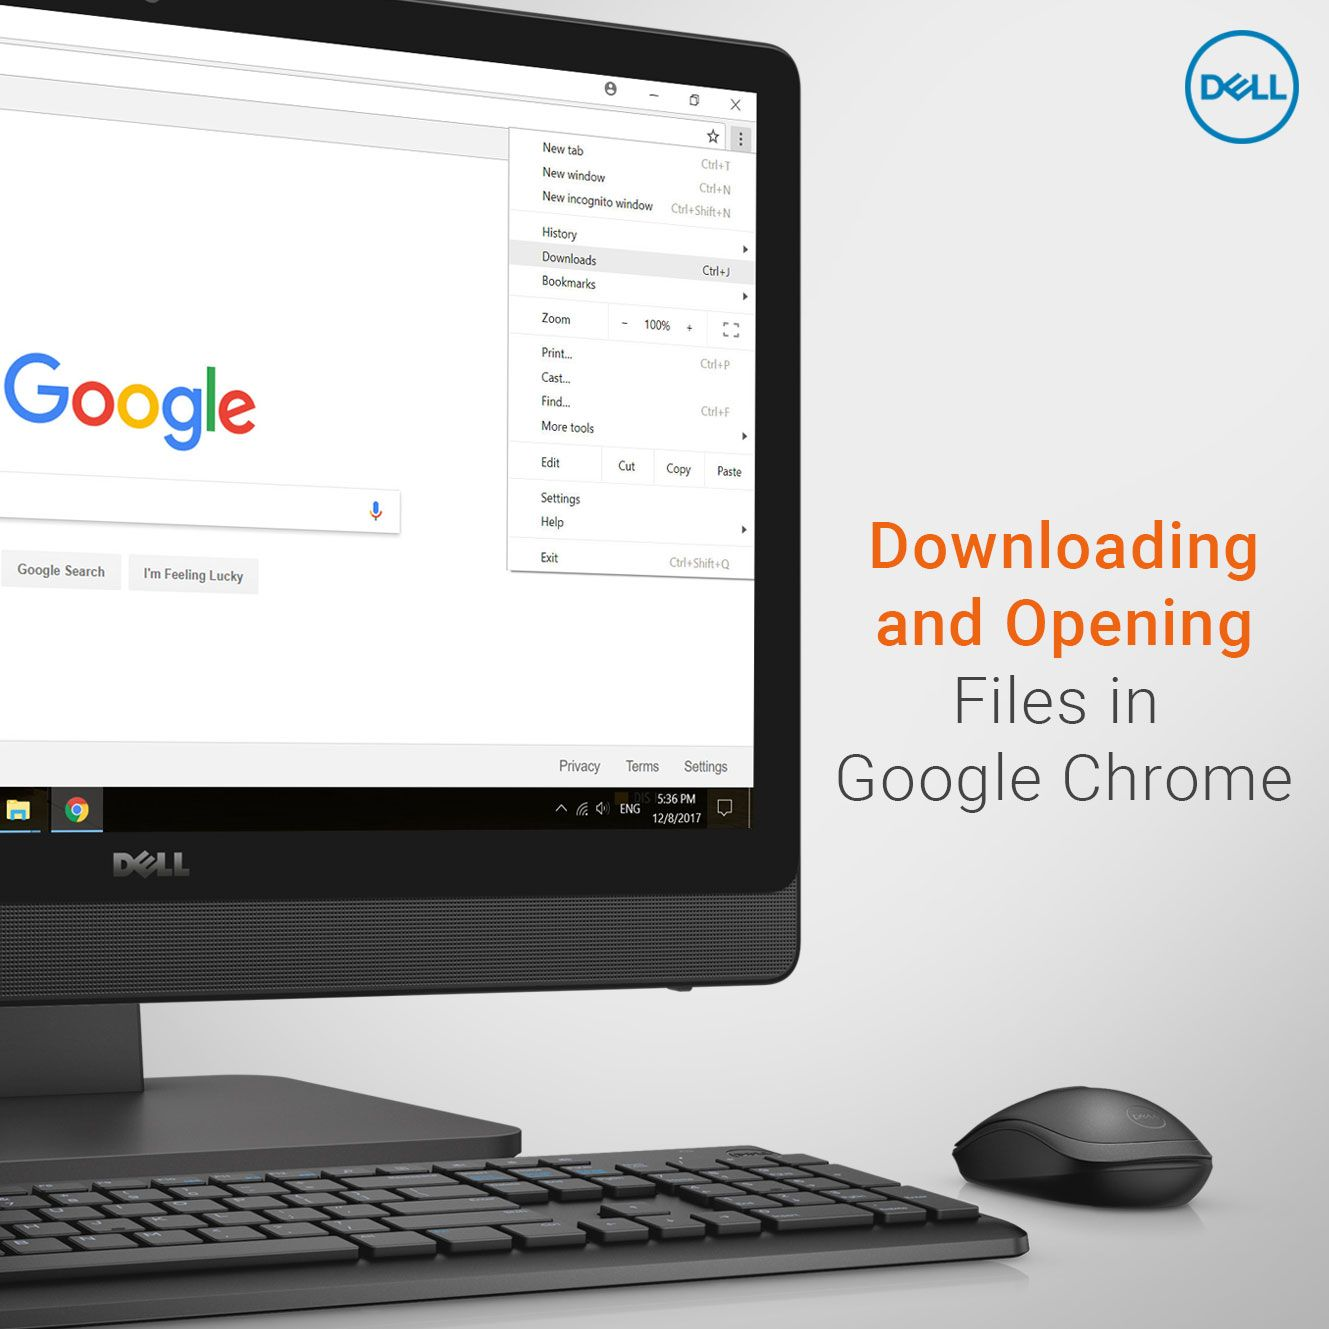 Downloading, and opening, files is made very easy in Google Chrome